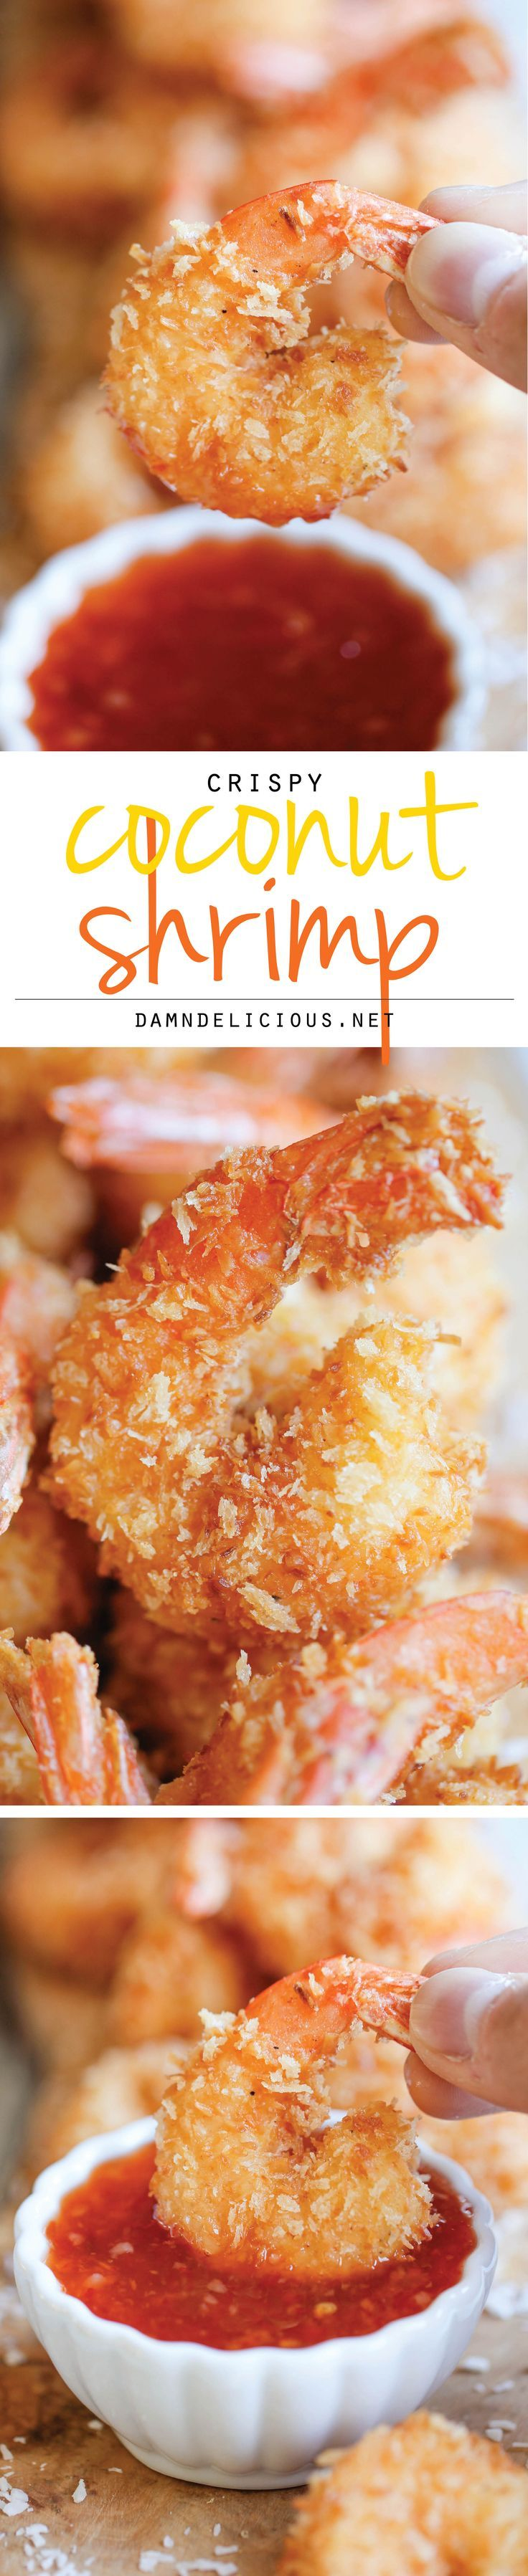 Coconut Shrimp - You won't believe how easy this is to make. and it's so much cheaper and tastier to make it right at home!